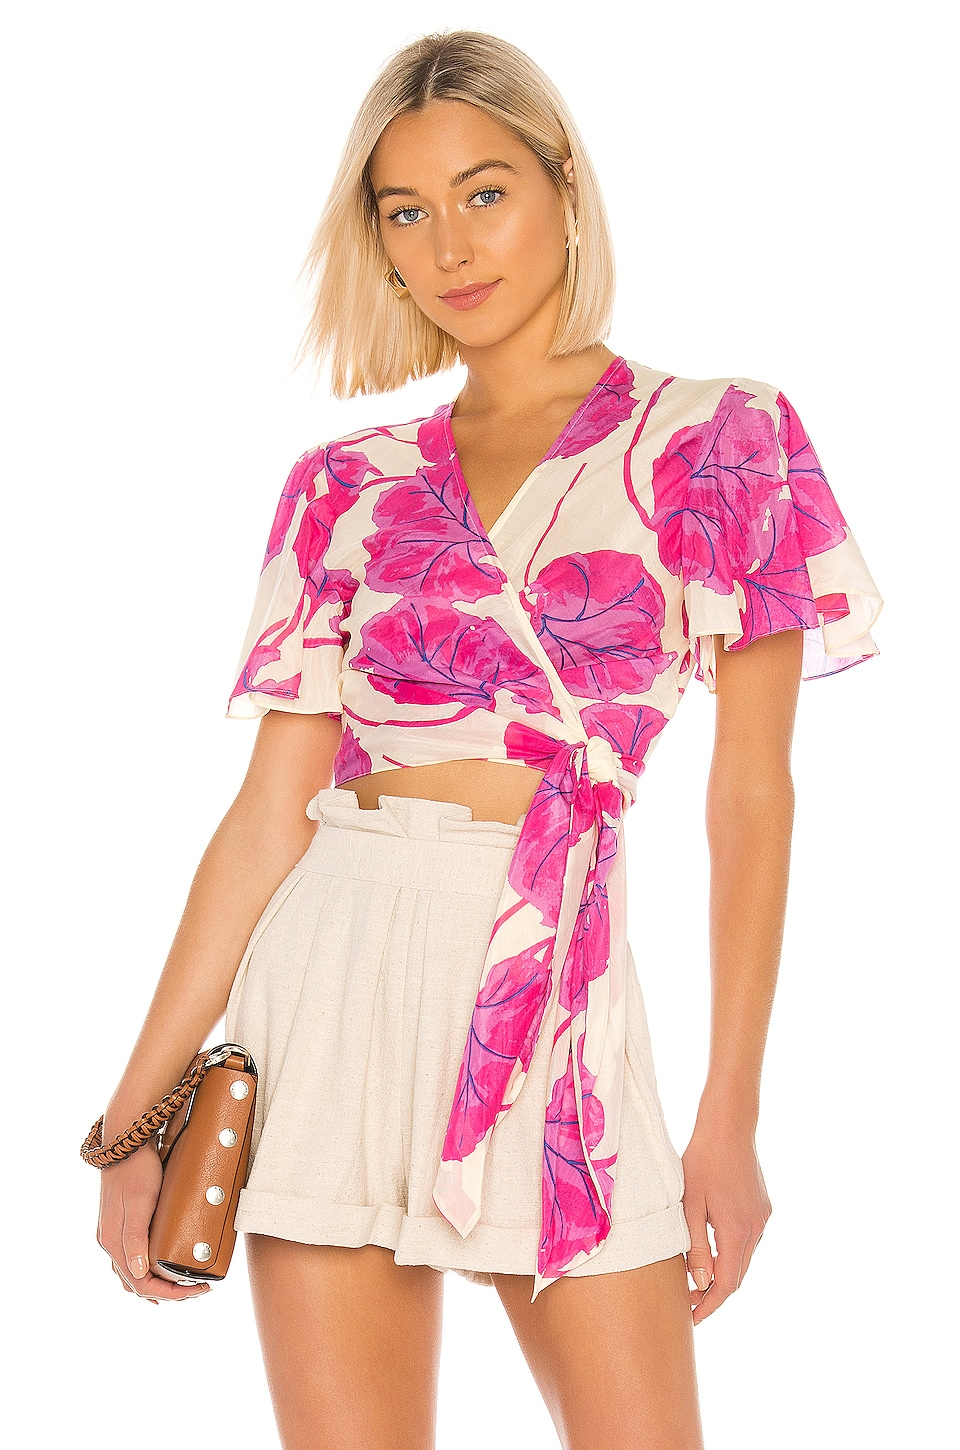 Diane von Furstenberg Hailey Top in Kimono Leaf & Almond